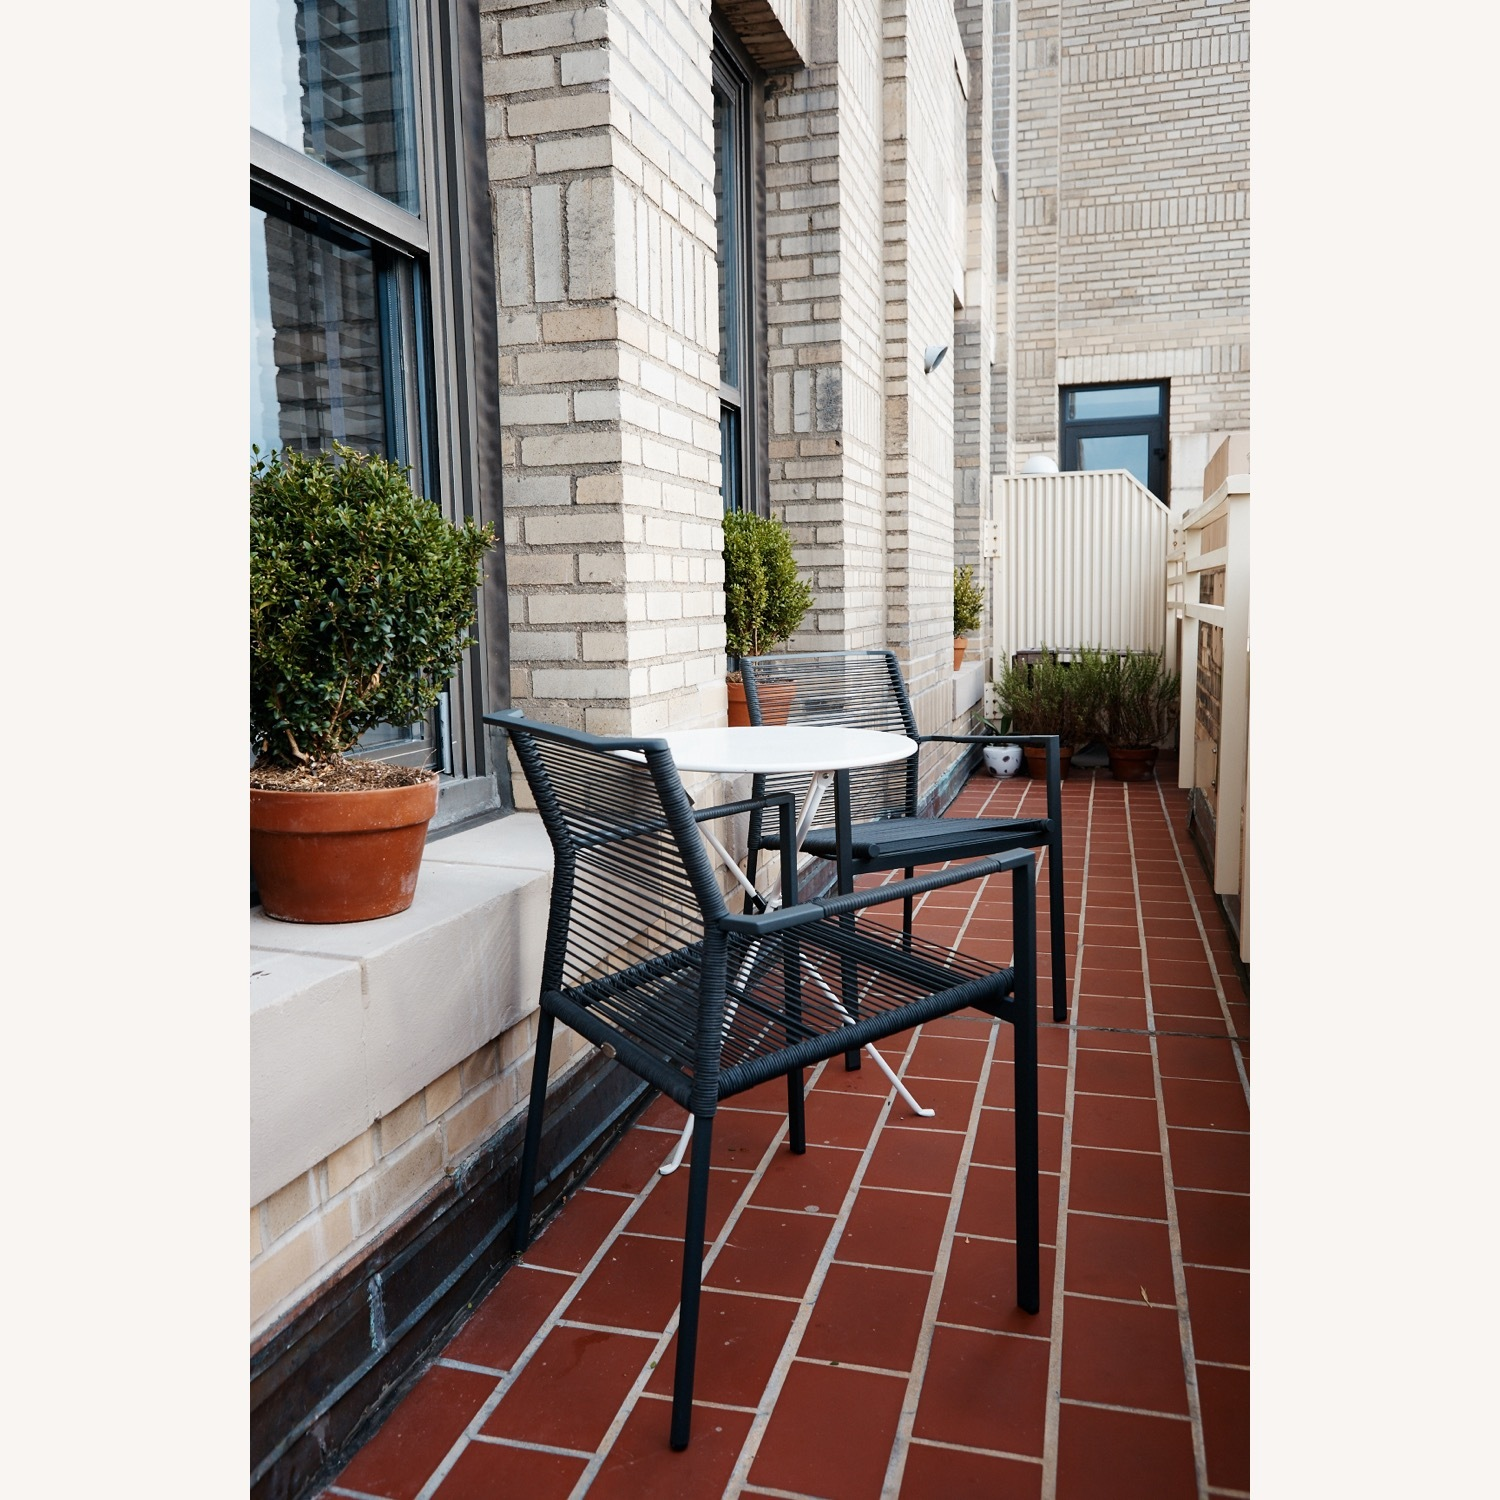 Set of 2 Cane-line Edge Outdoor Armchairs - image-3